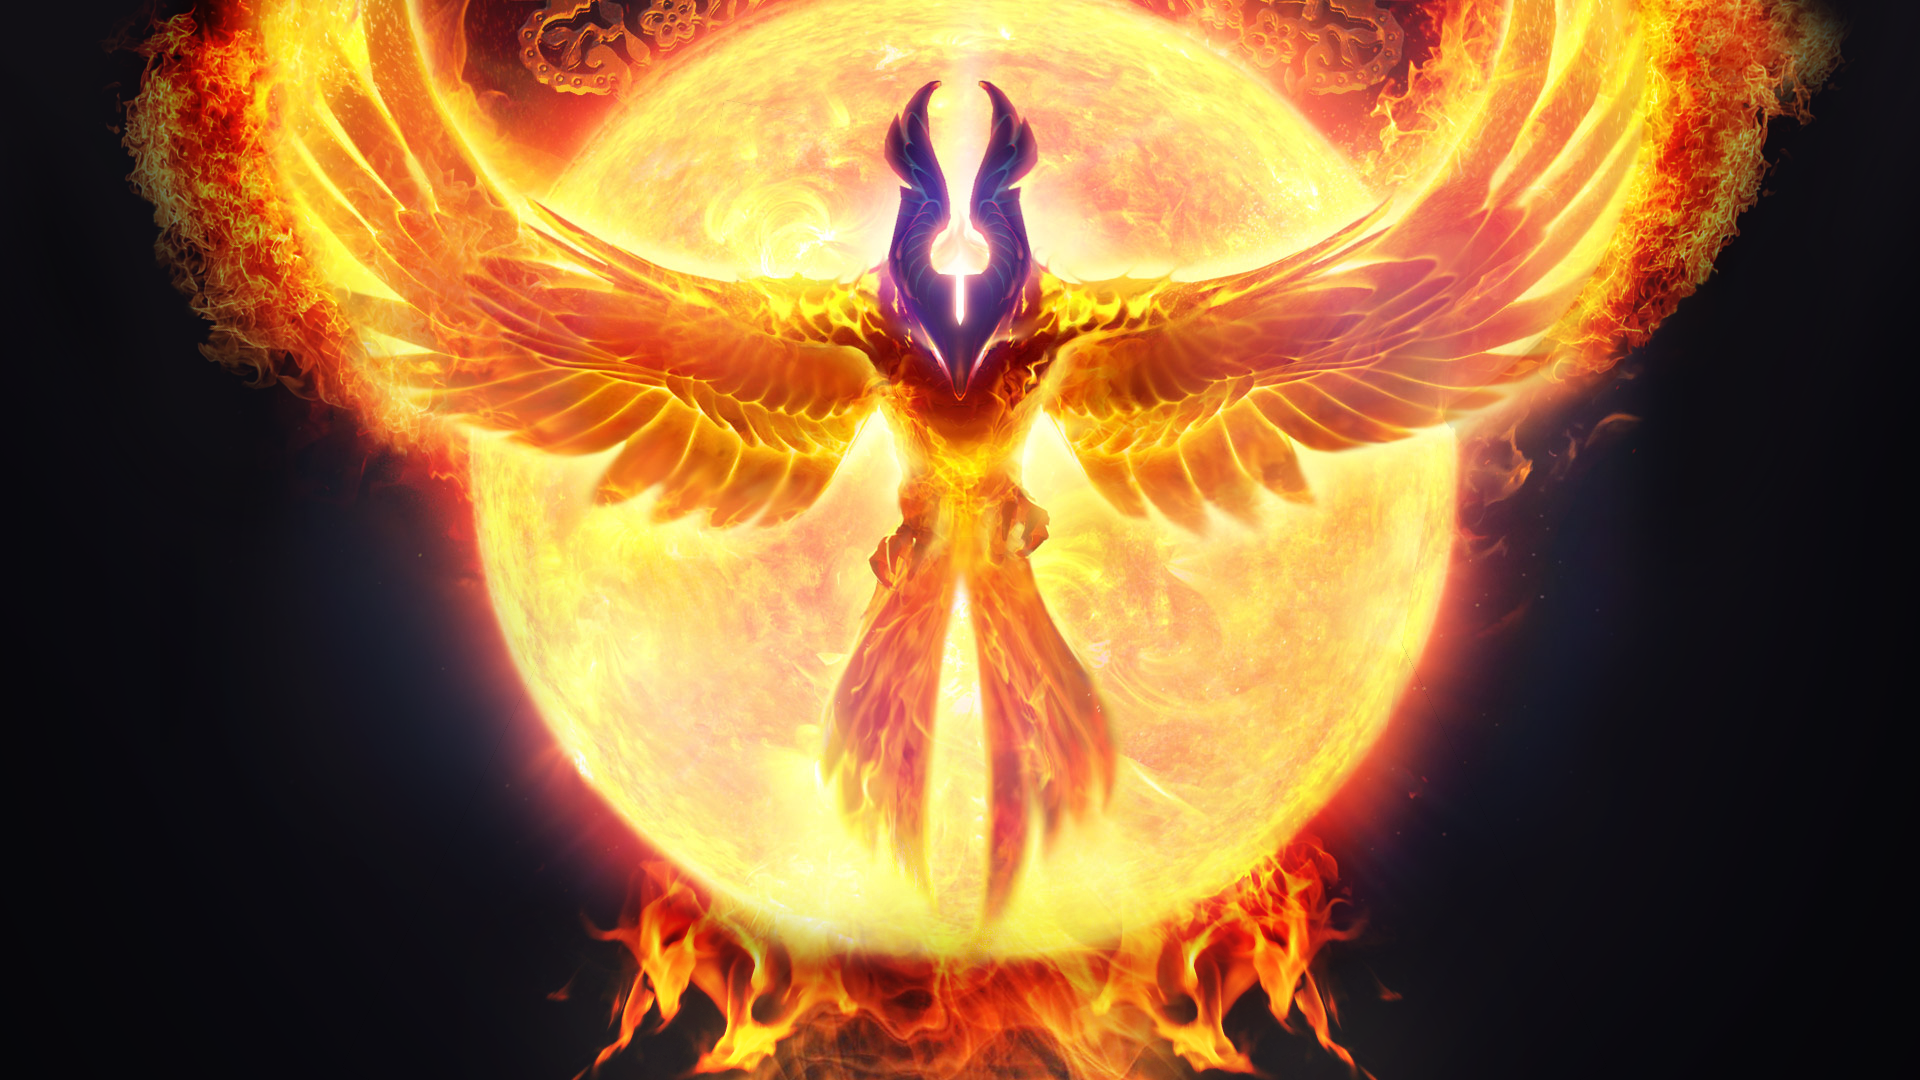 PHOENIX WALLPAPERS FREE Wallpapers Background images 1920x1080